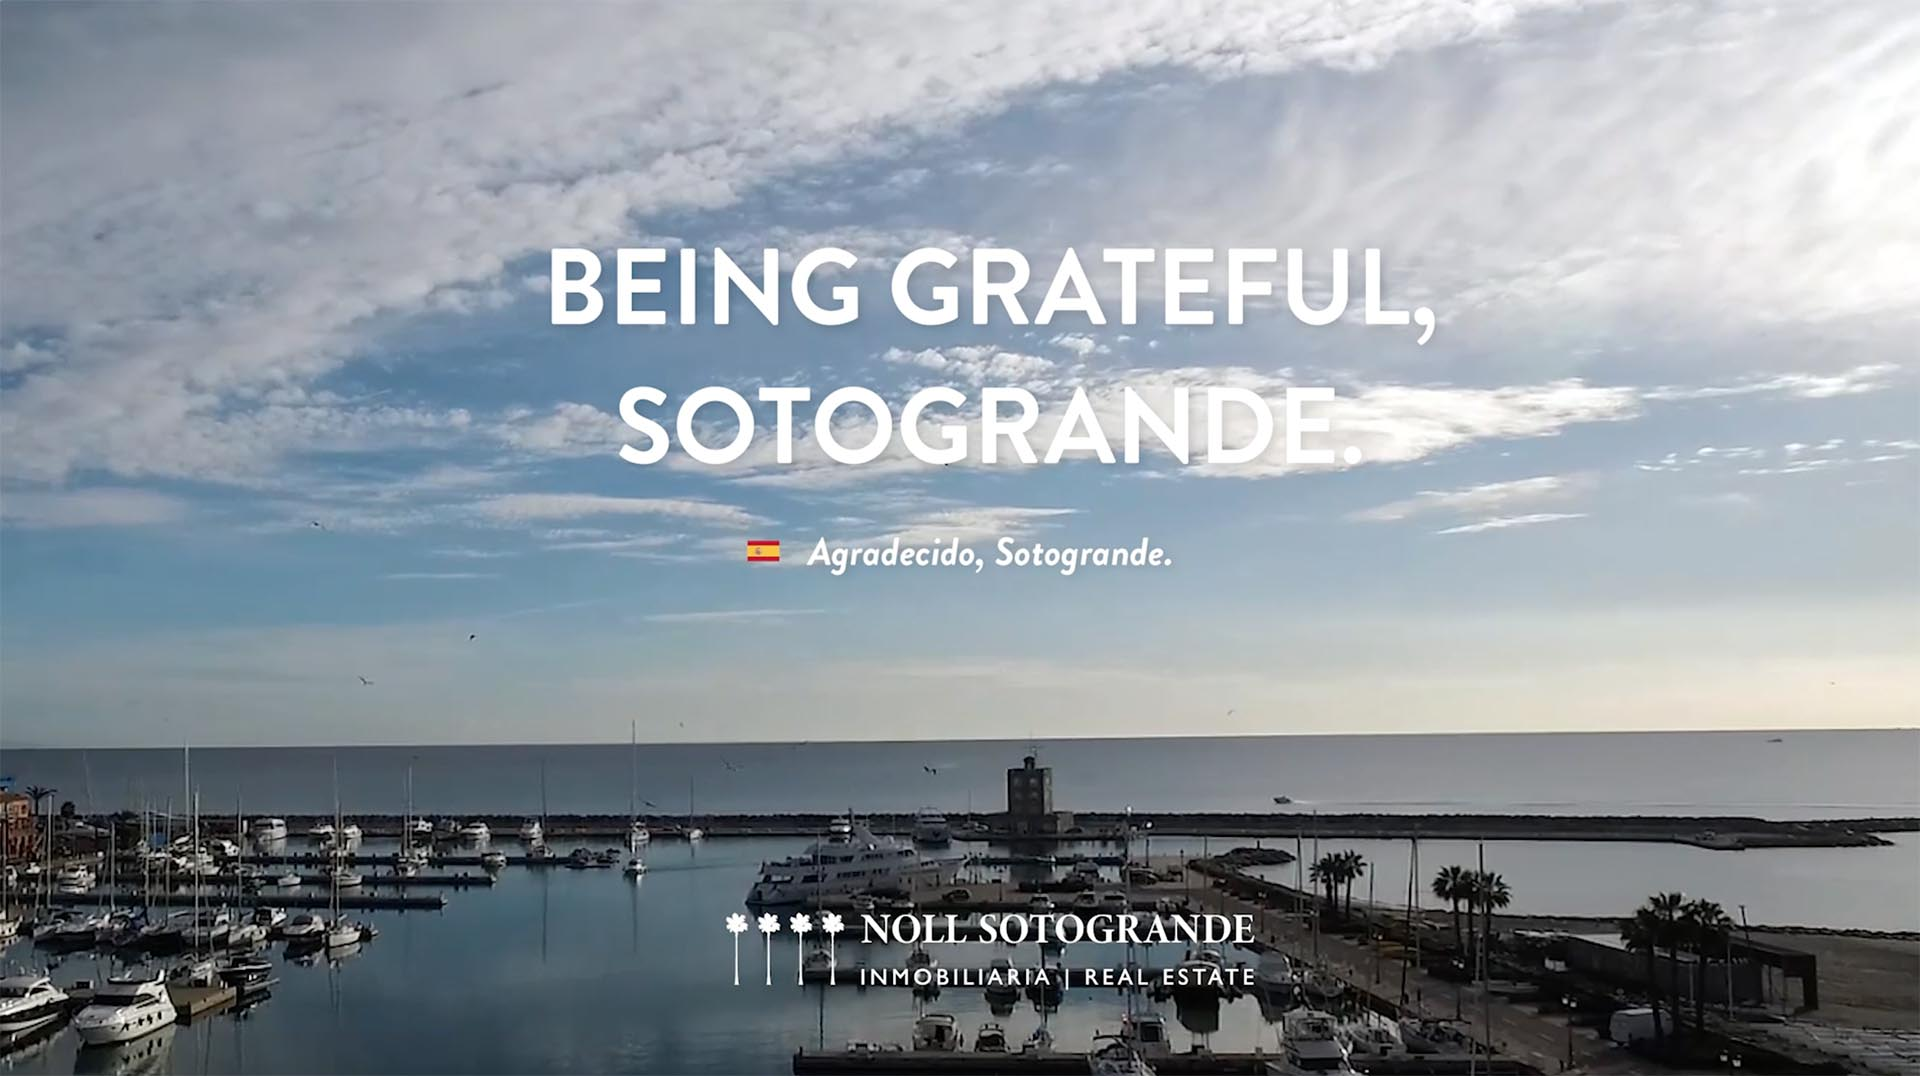 Being Grateful - A message to our beloved Sotogrande community-1